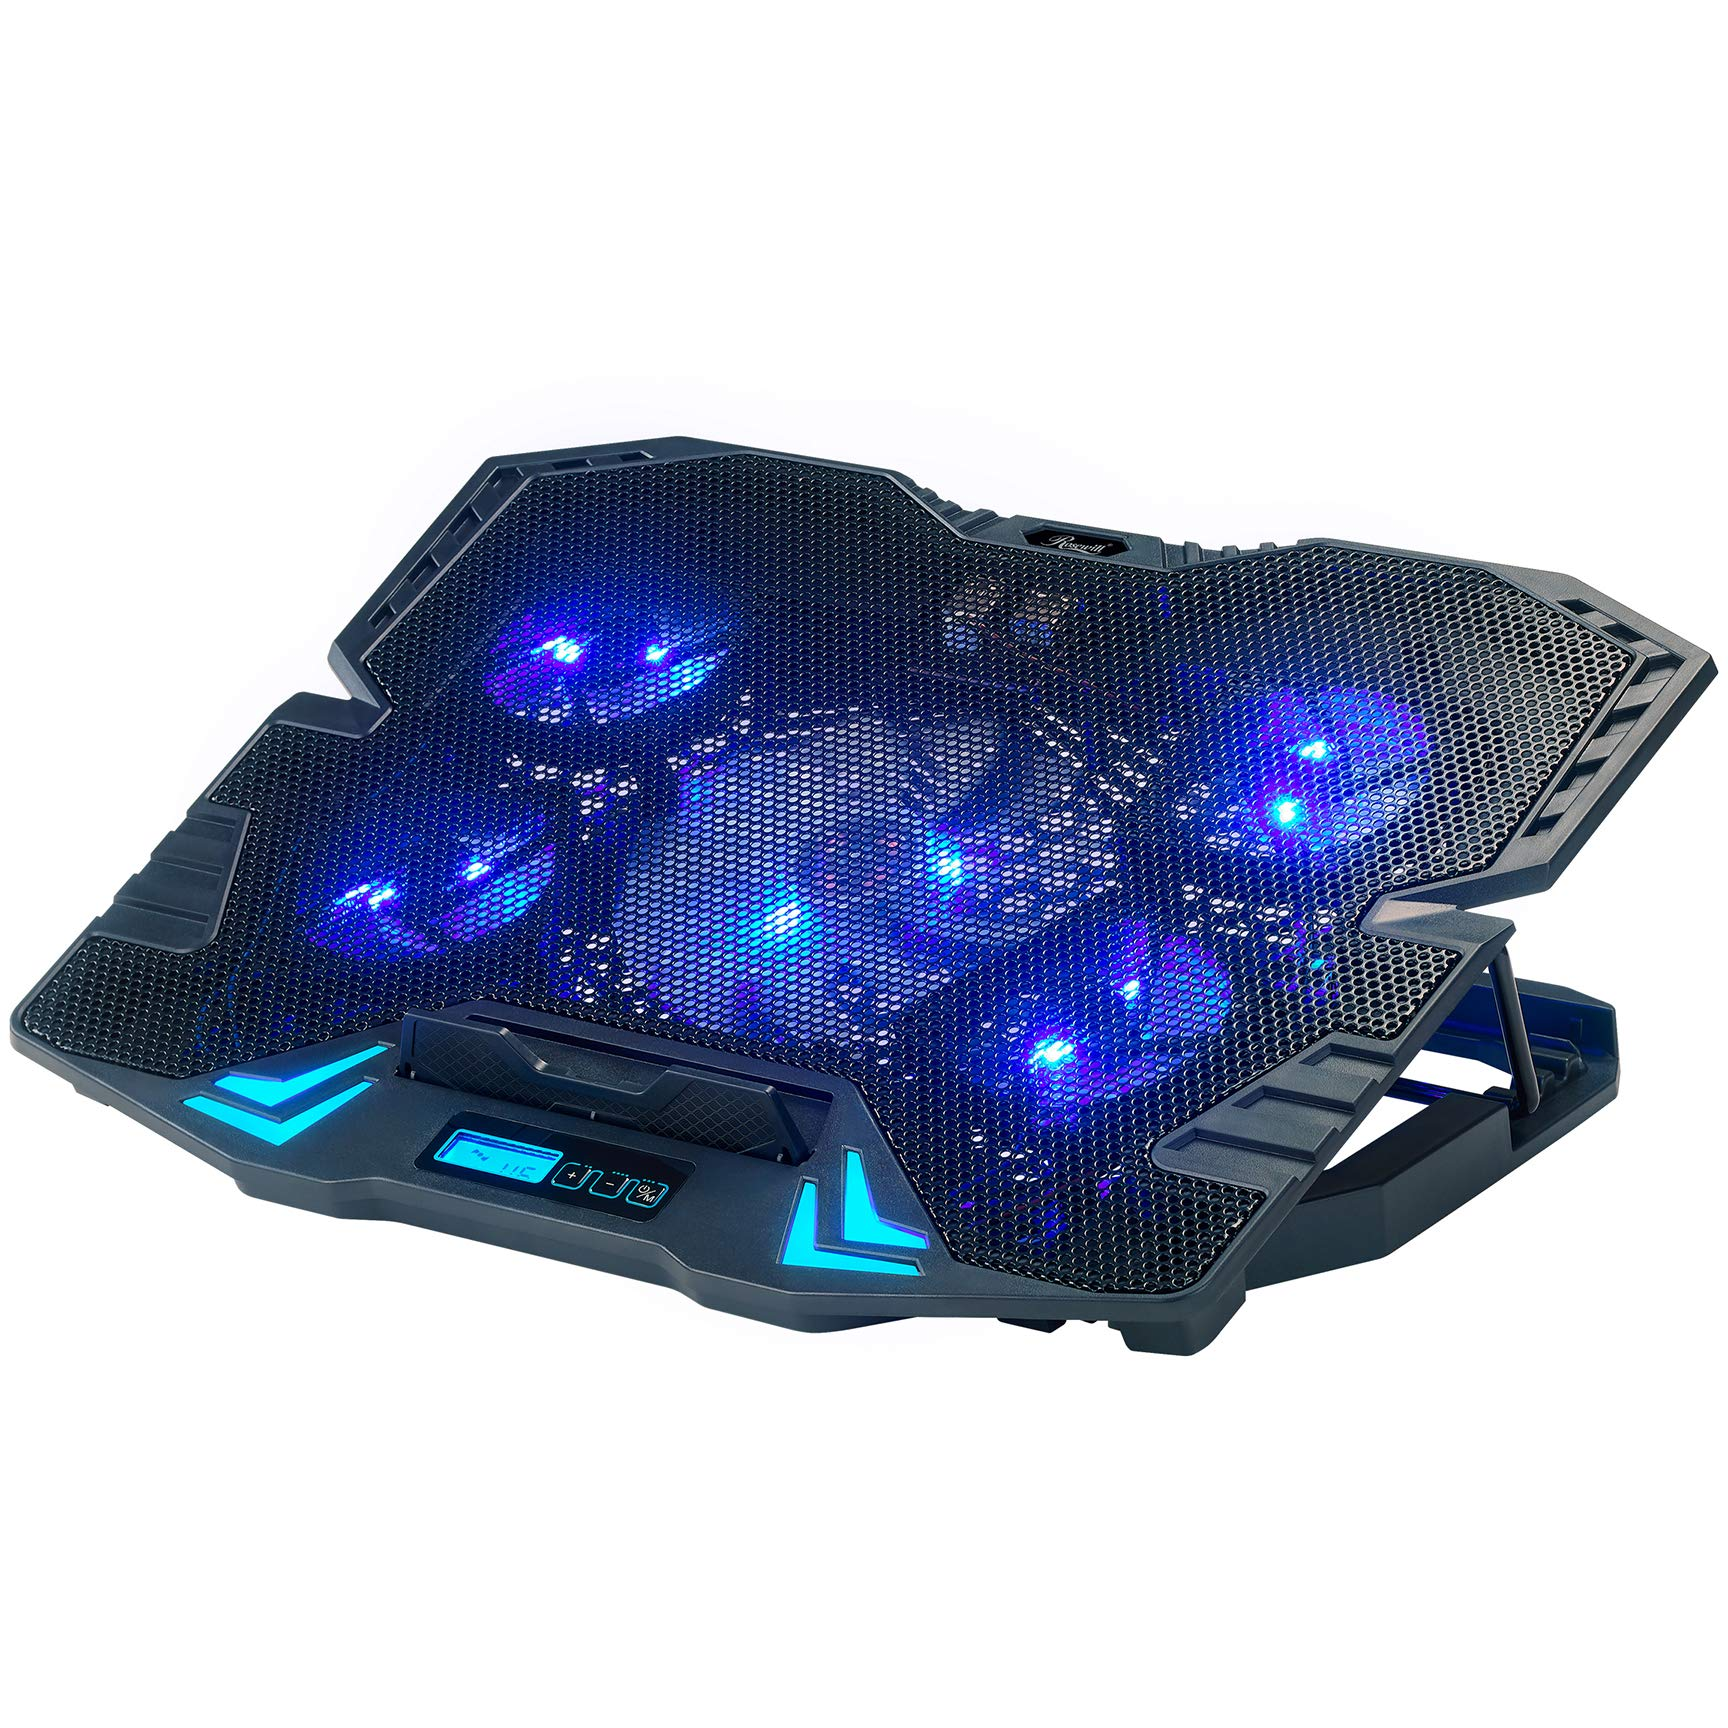 Rosewill Gaming Laptop Cooler Notebook Cooling Pad, 5 Silent Blue LED Fans w/Powerful Air Flow, Control Panel w/LCD Screen, Portable Height Adjustable Laptop Stand, Comfortable for Wrists